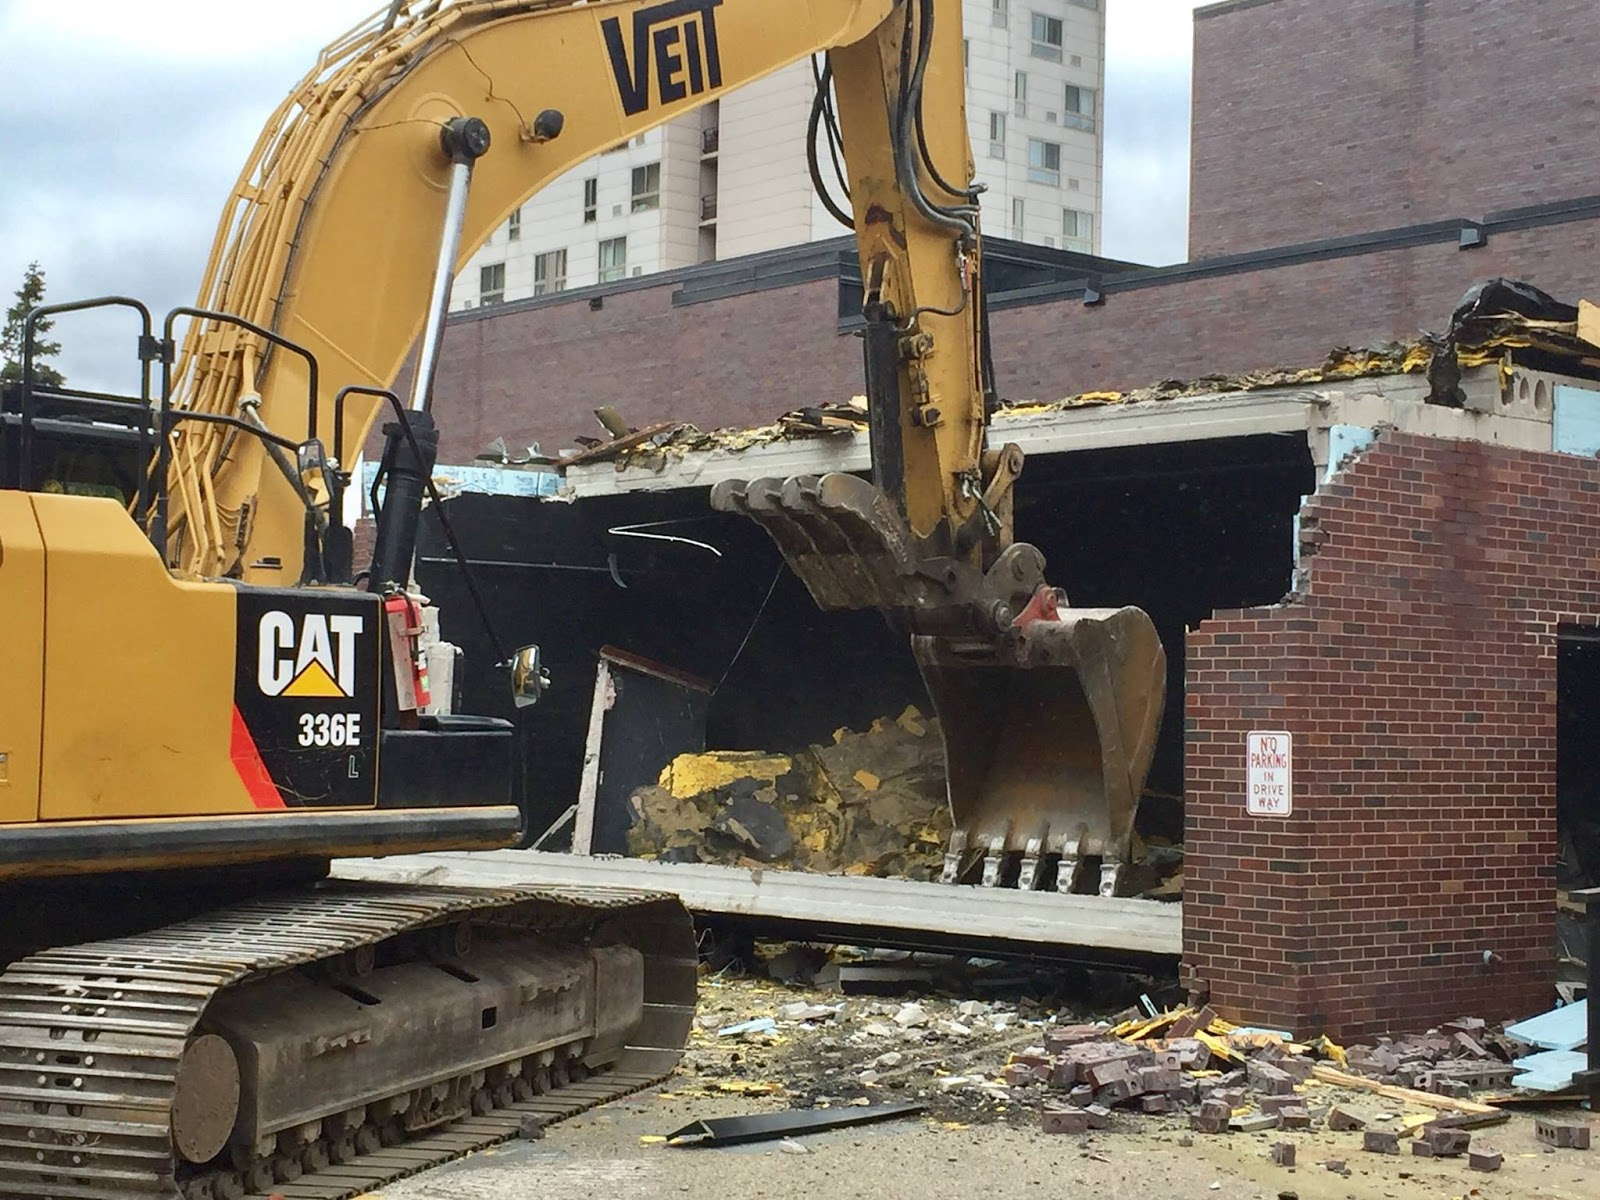 Black box bulldozed, condos coming